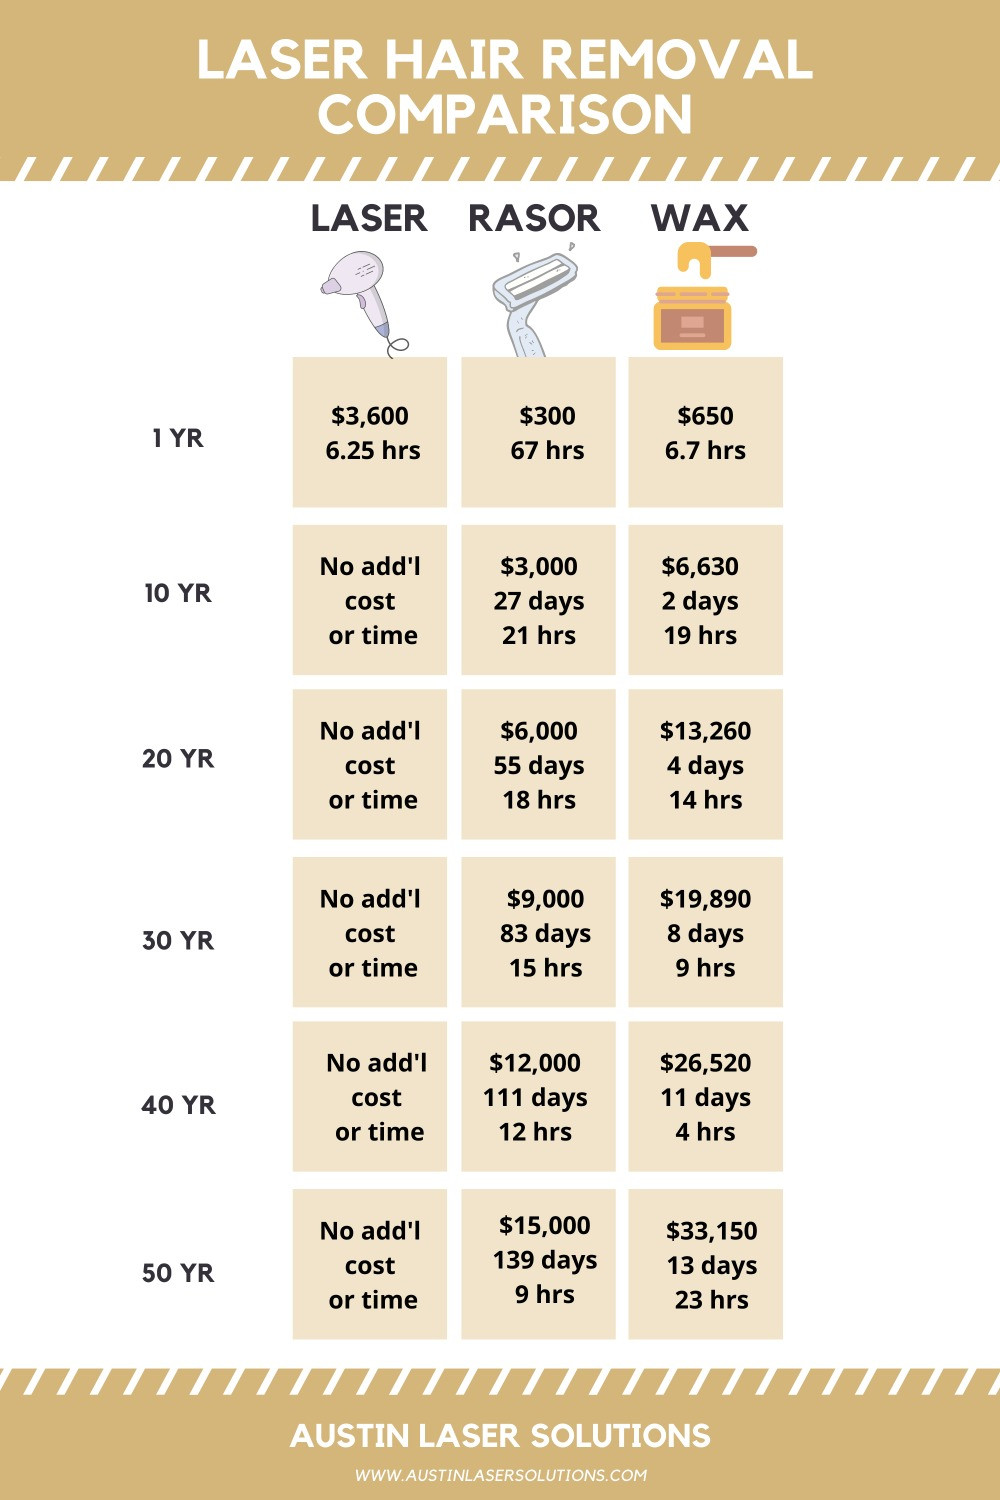 laser hair removal pricing comparison chart